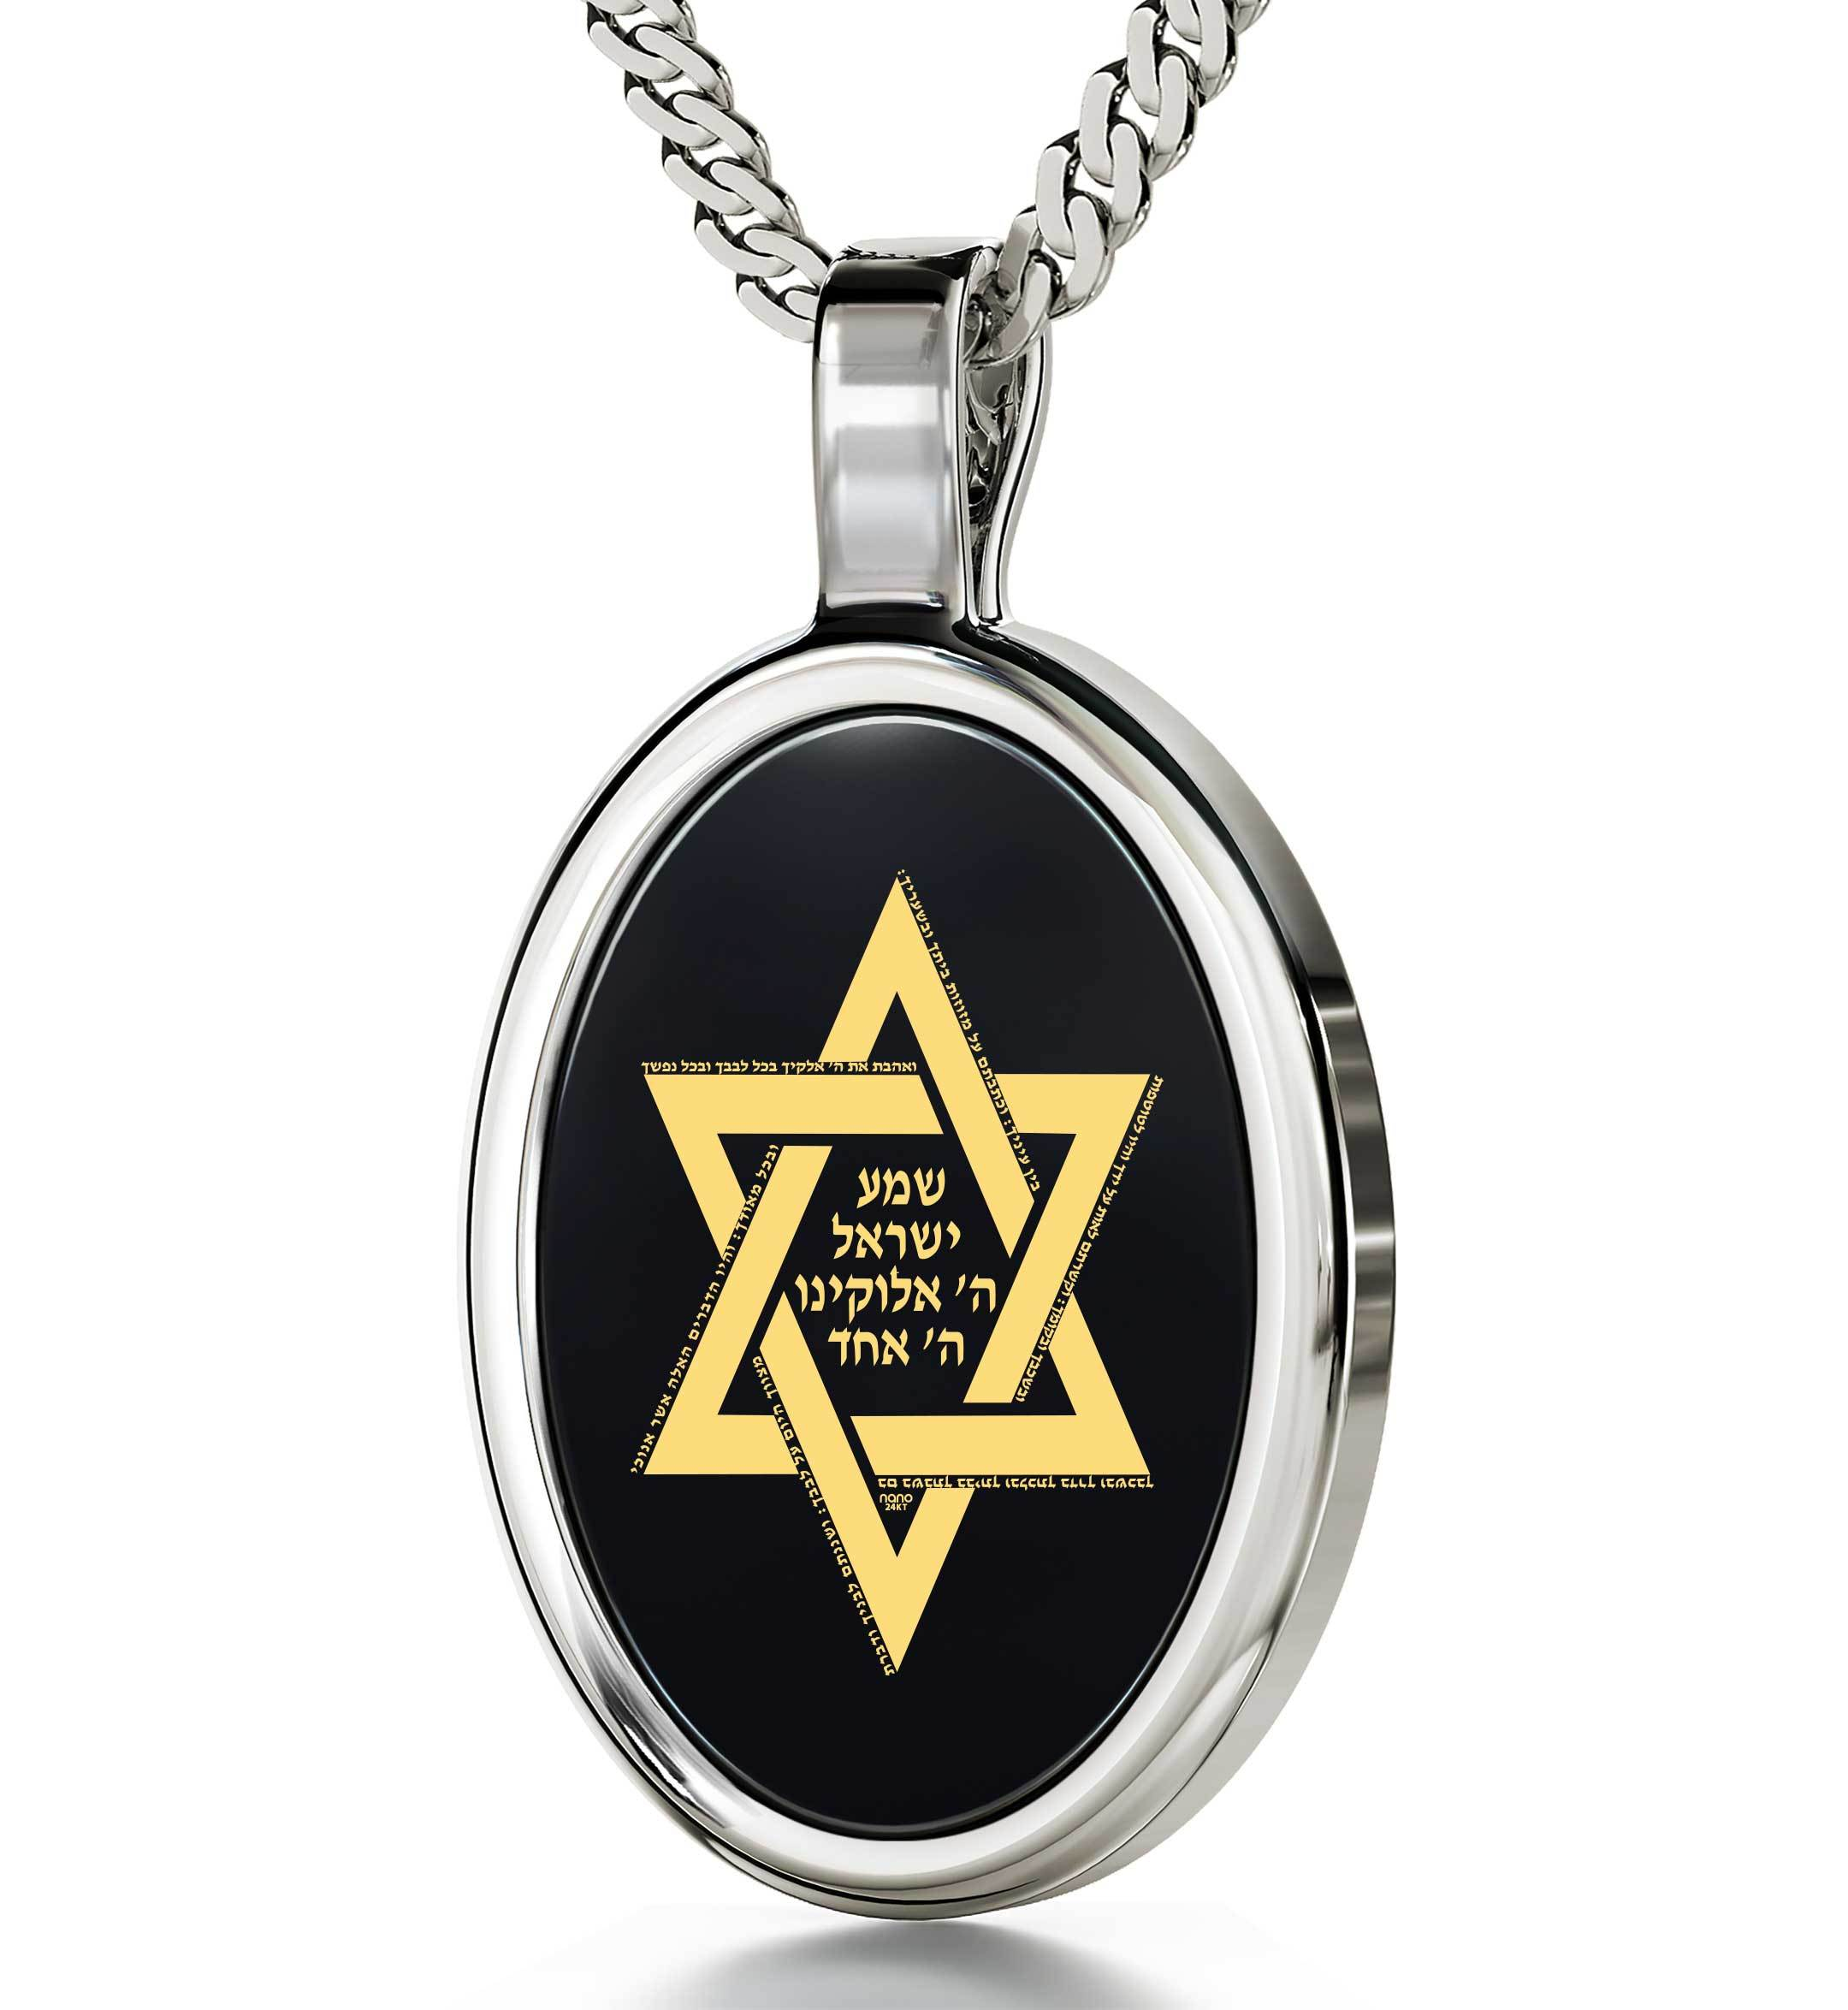 """Shema Yisrael"" Engraved in 24k, Israeli Silver Jewelry, Jewish Jewelry with Black Onyx Pendant"